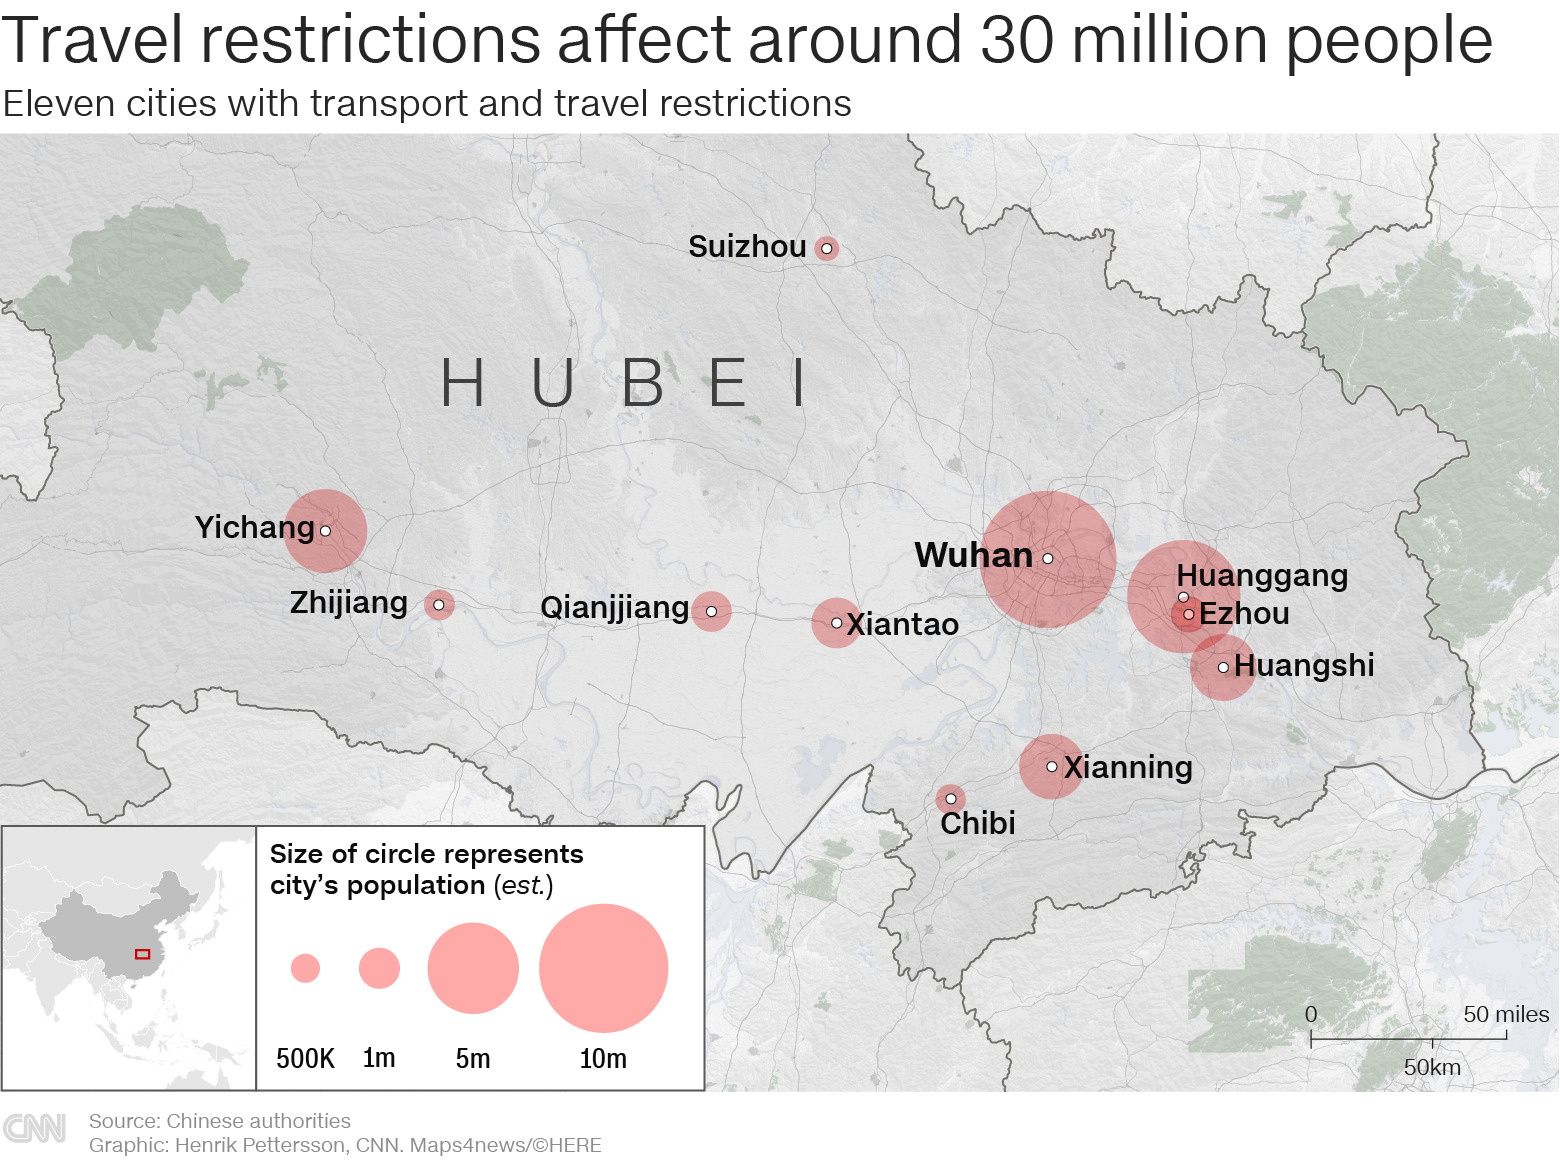 Transport Restricted in 11 Chinese Cities. Officers in Hazmat Suits with Automatic Rifles Deployed